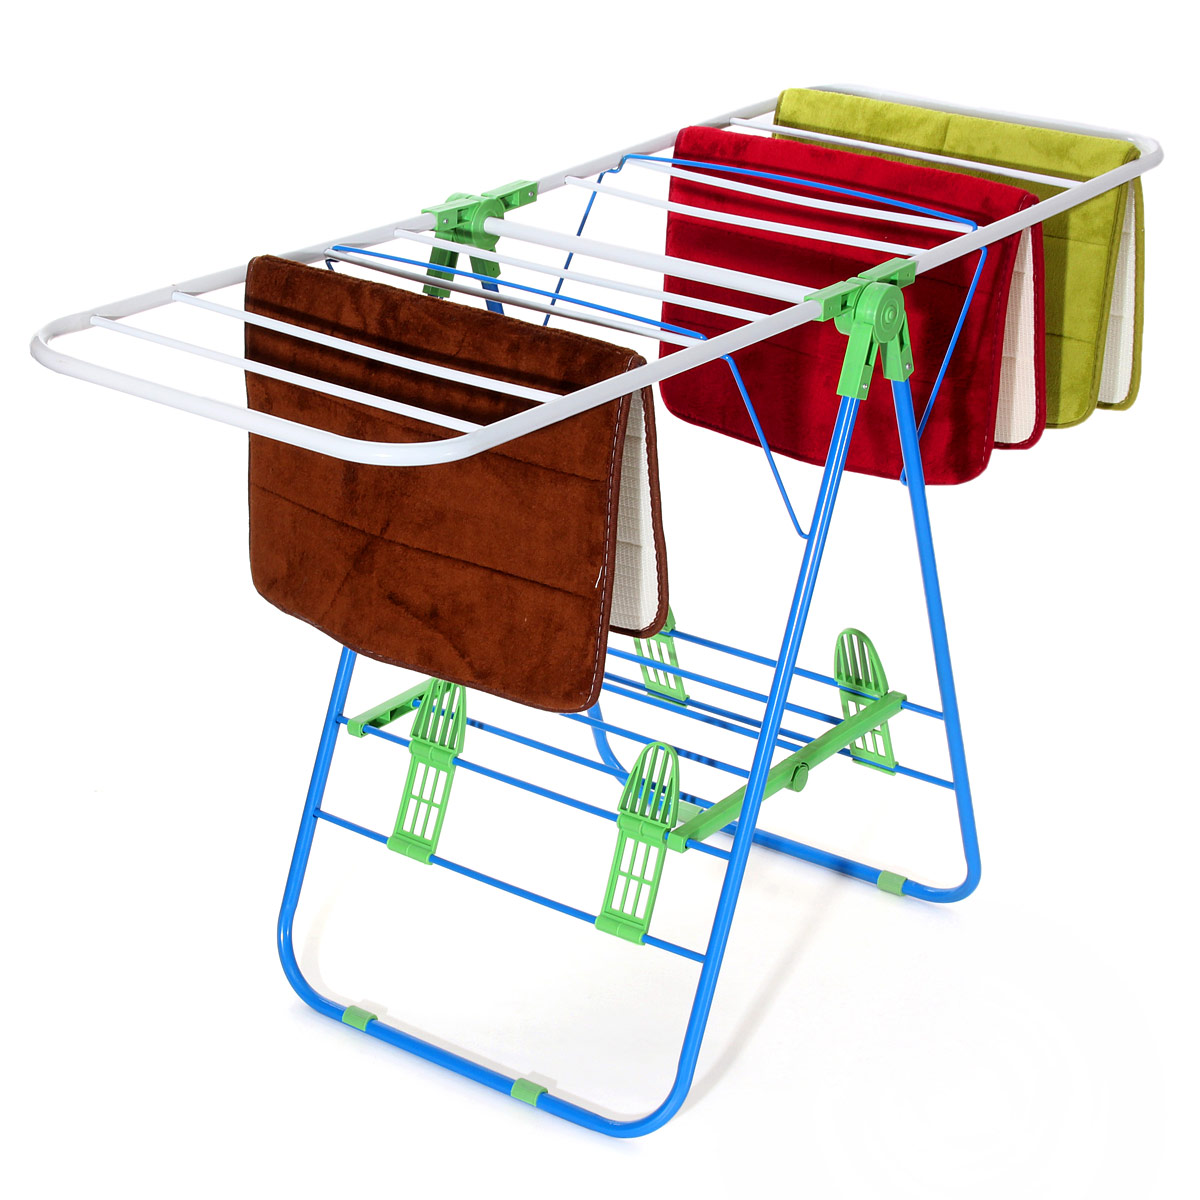 Awesome Laundry Clothes Storage Drying Rack Portable Folding Heavy Duty Dryer Hanger